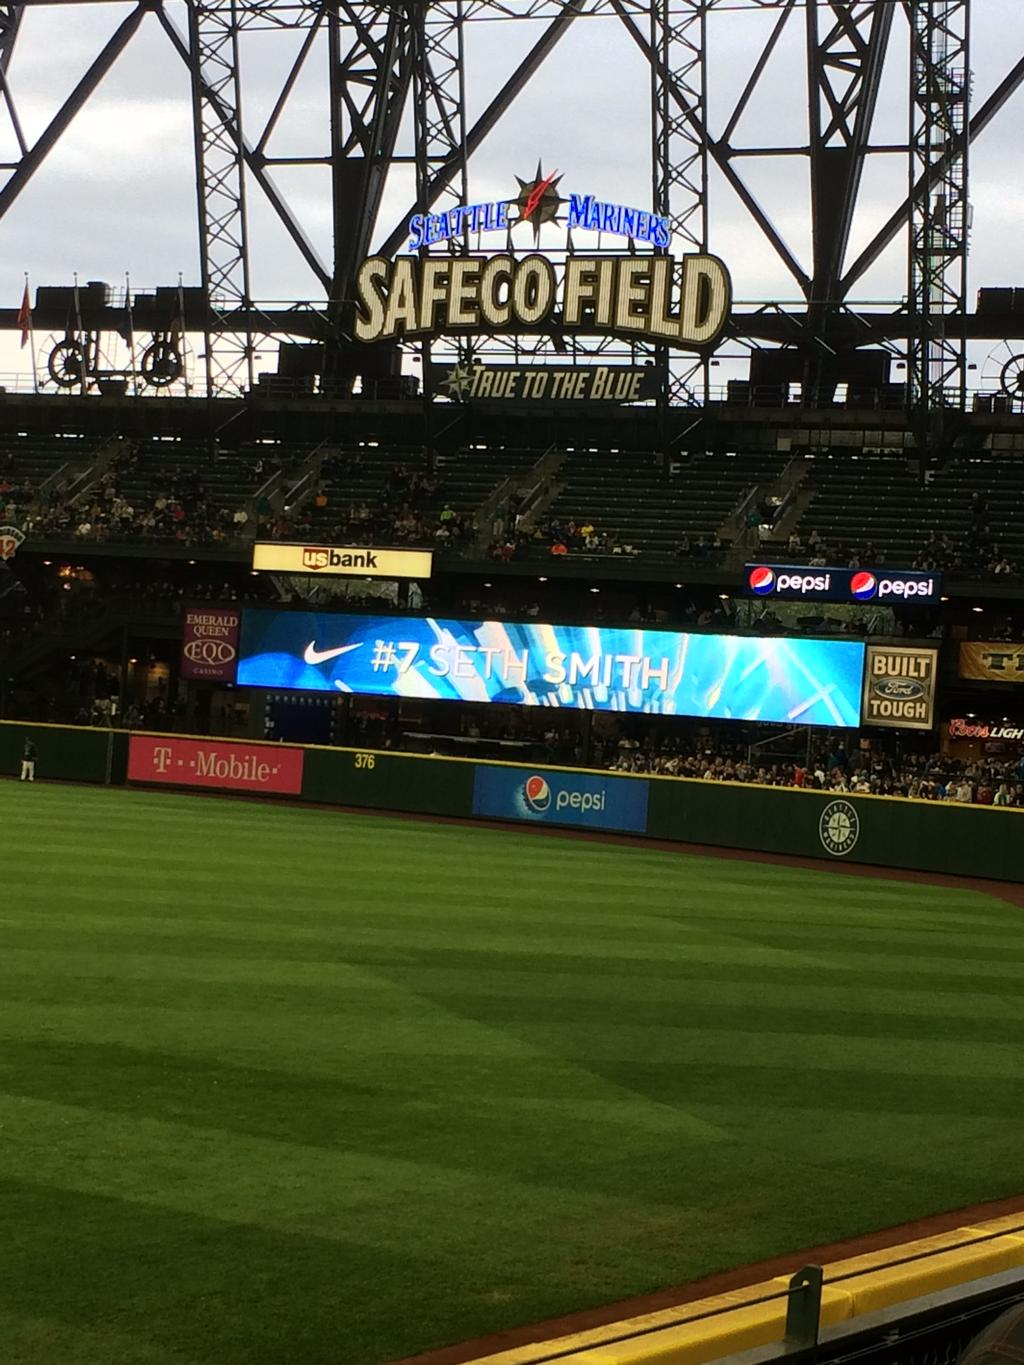 Safeco Field in Seattle